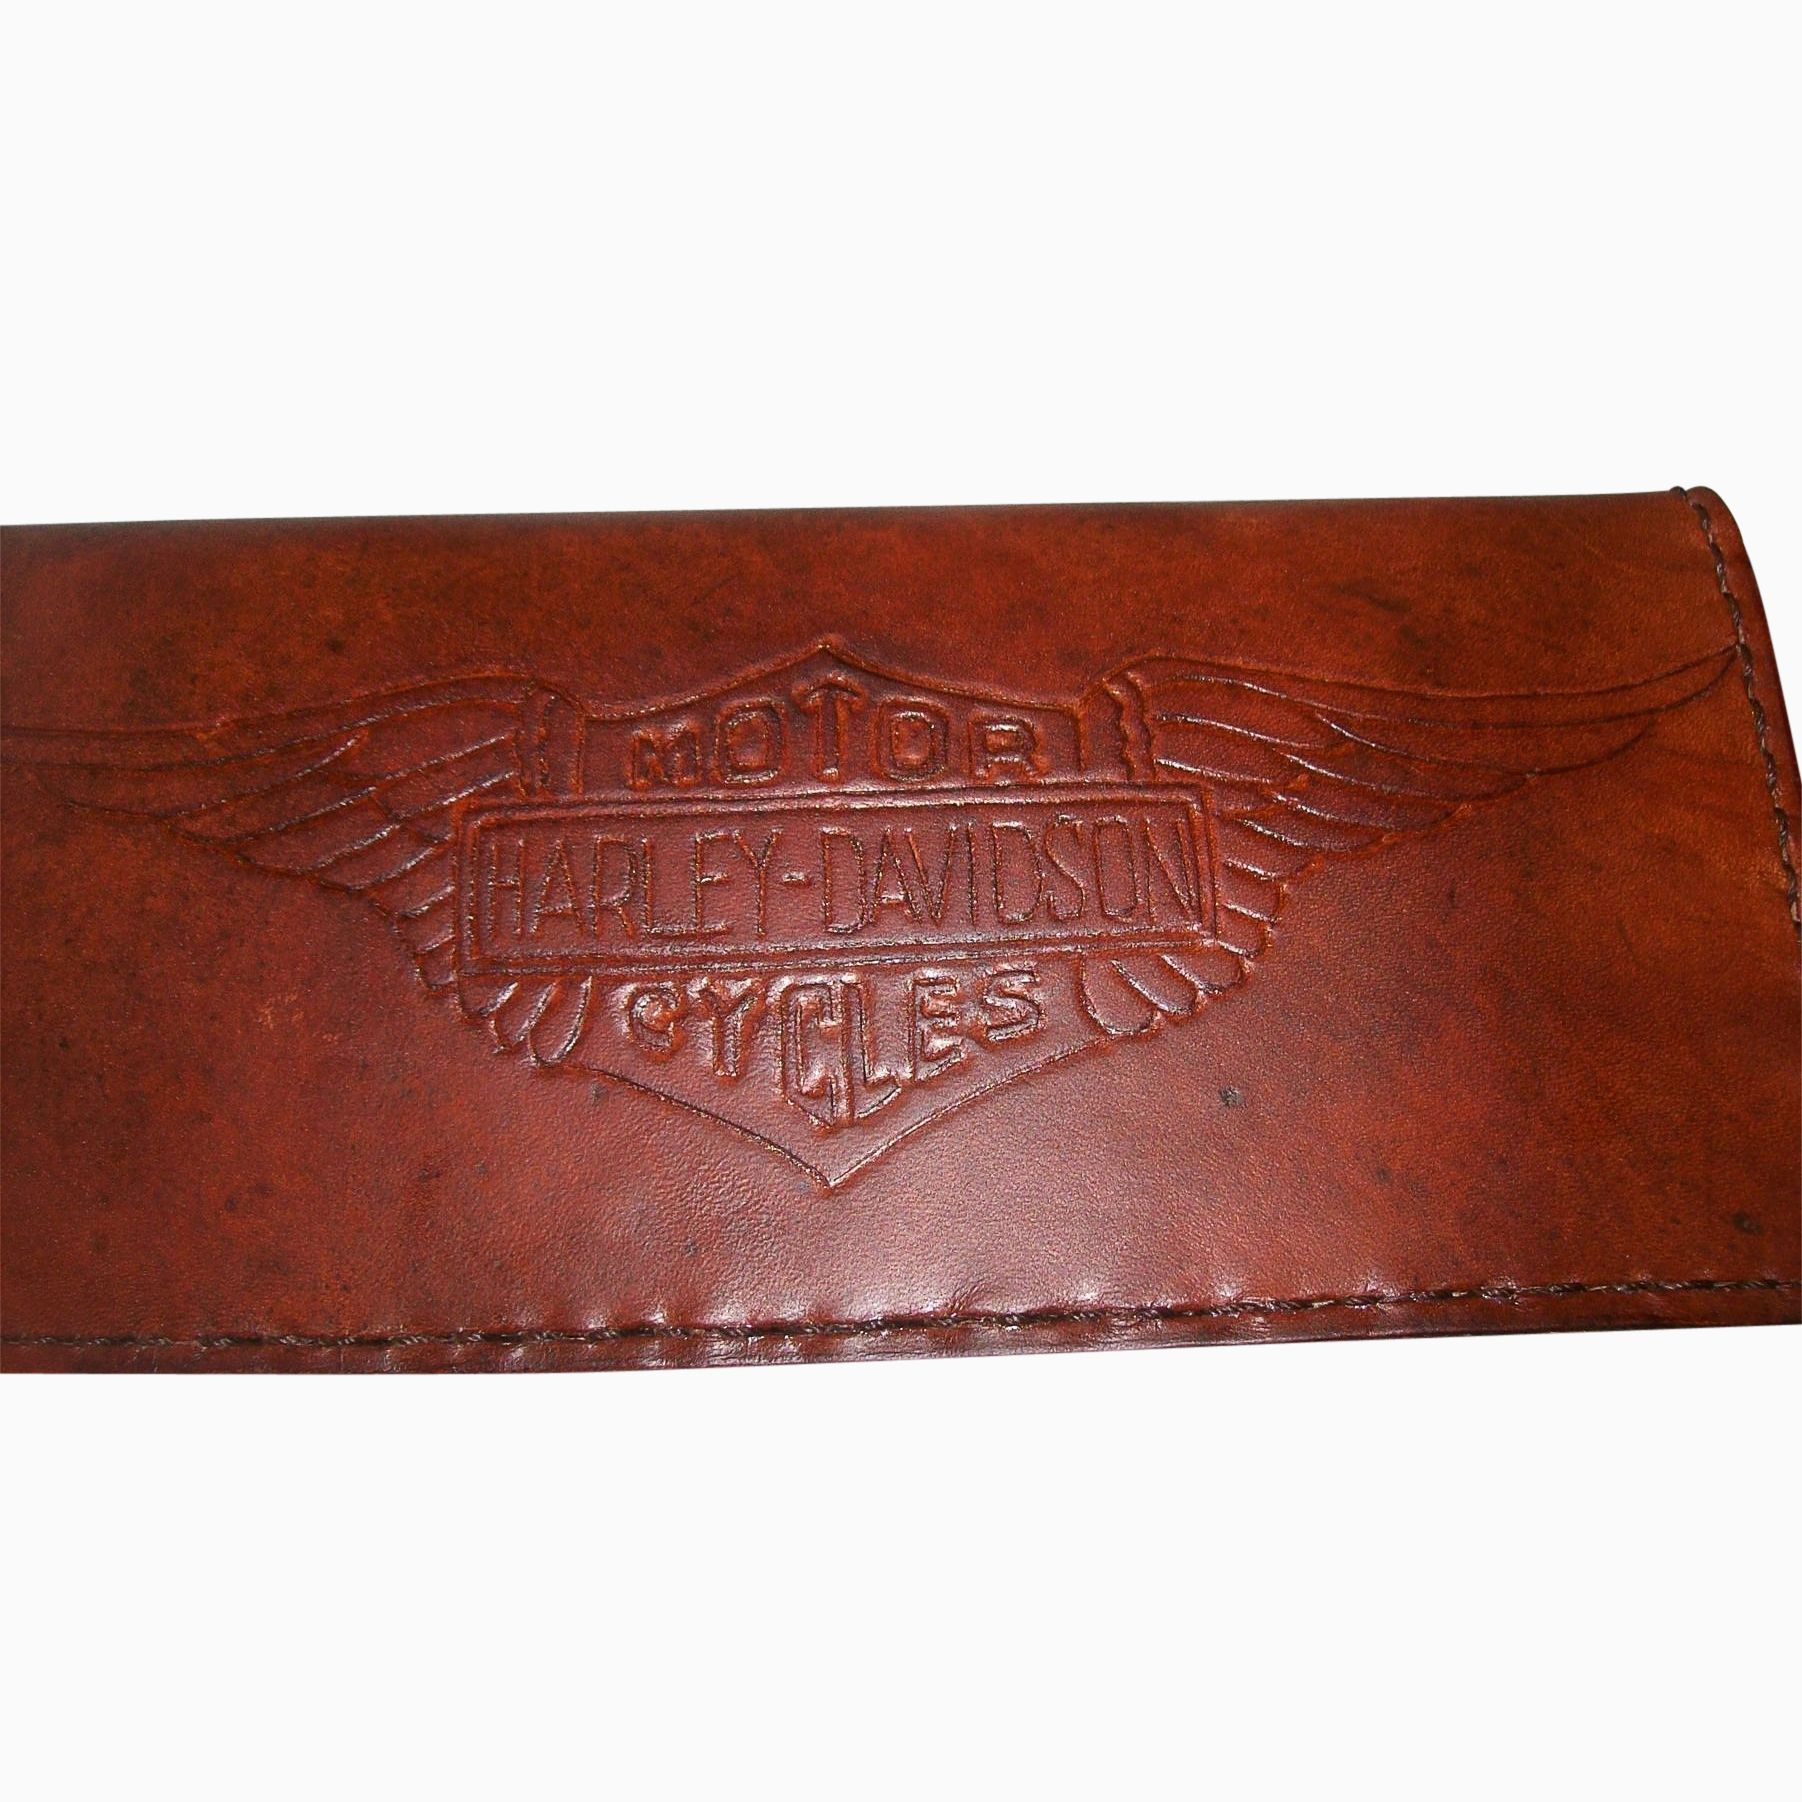 Buy a Hand Crafted Handcrafted Leather Harley Davidson Biker ...